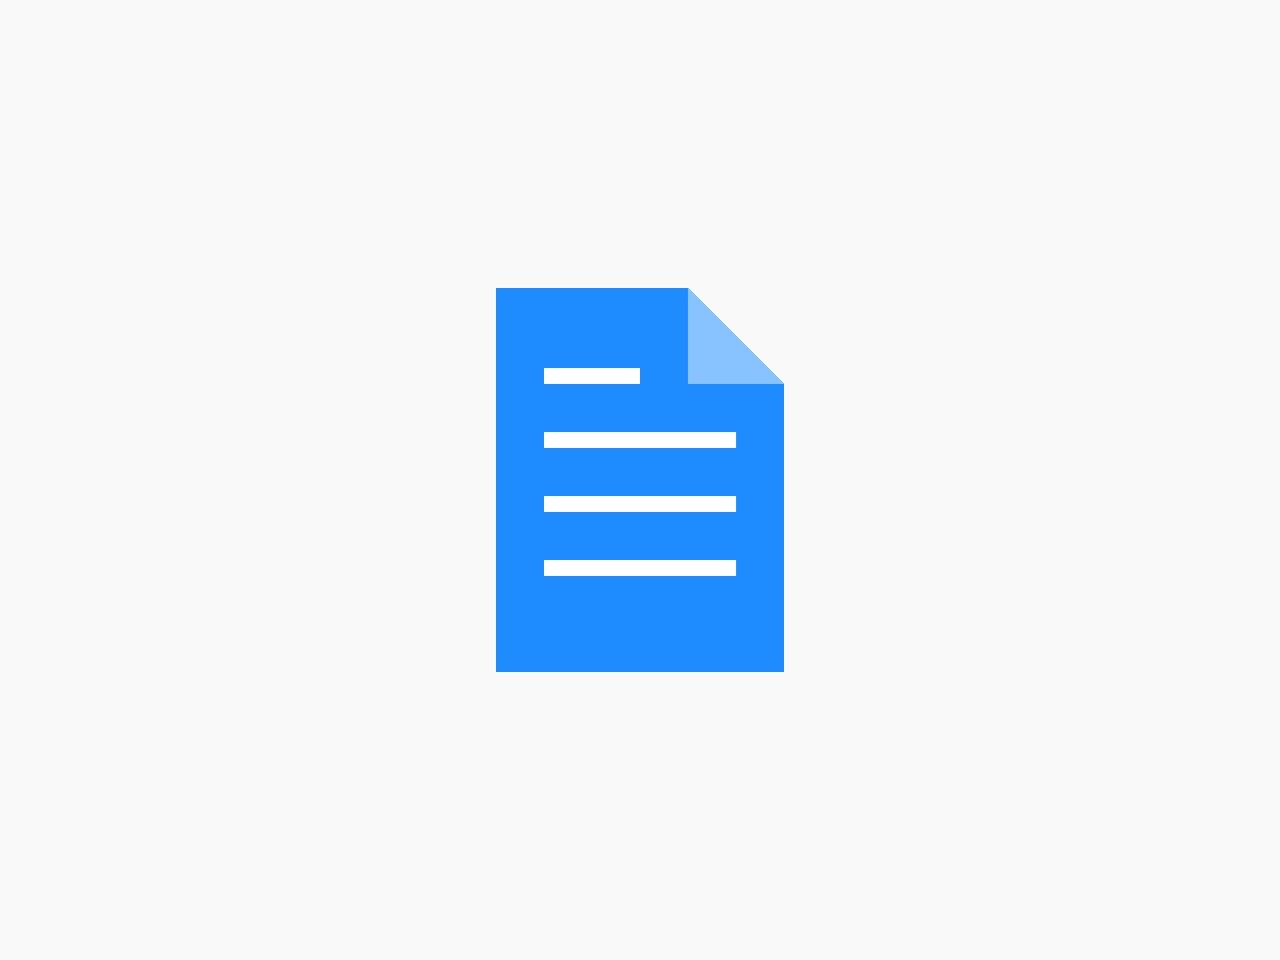 The great divide in Toronto housing